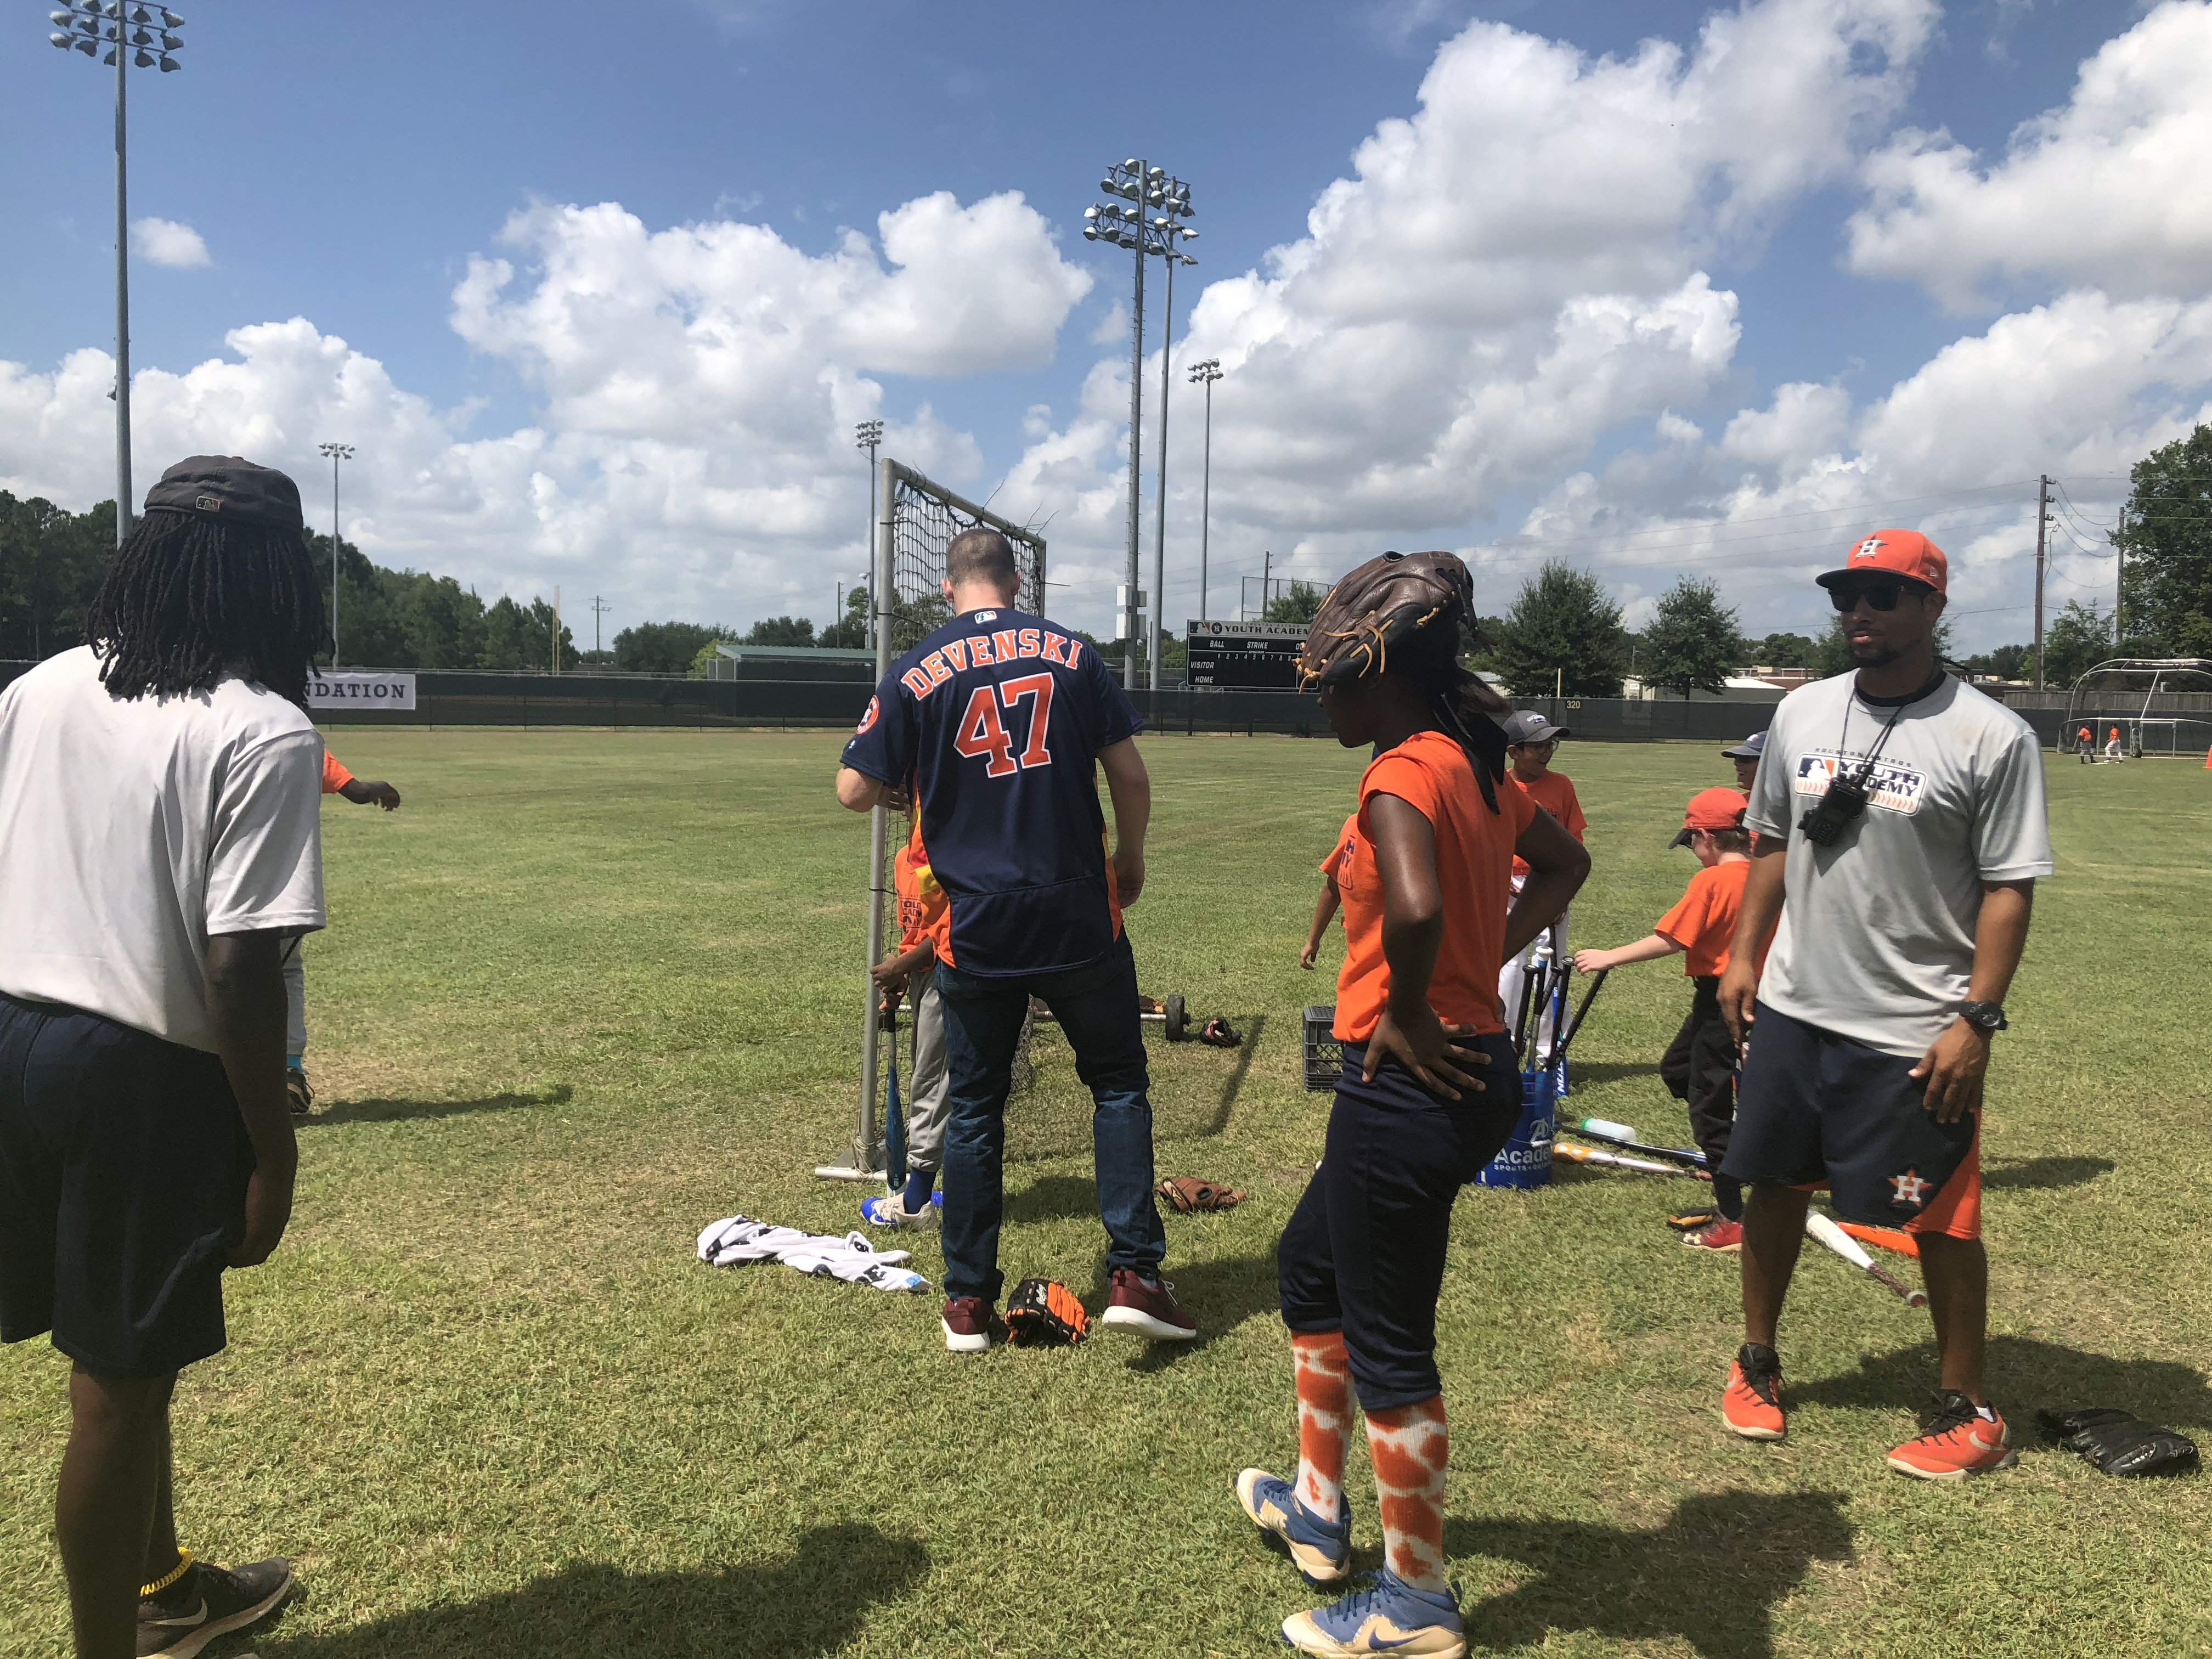 buy popular 480d4 efbdc Astros players visit youth academy, participate in drills ...